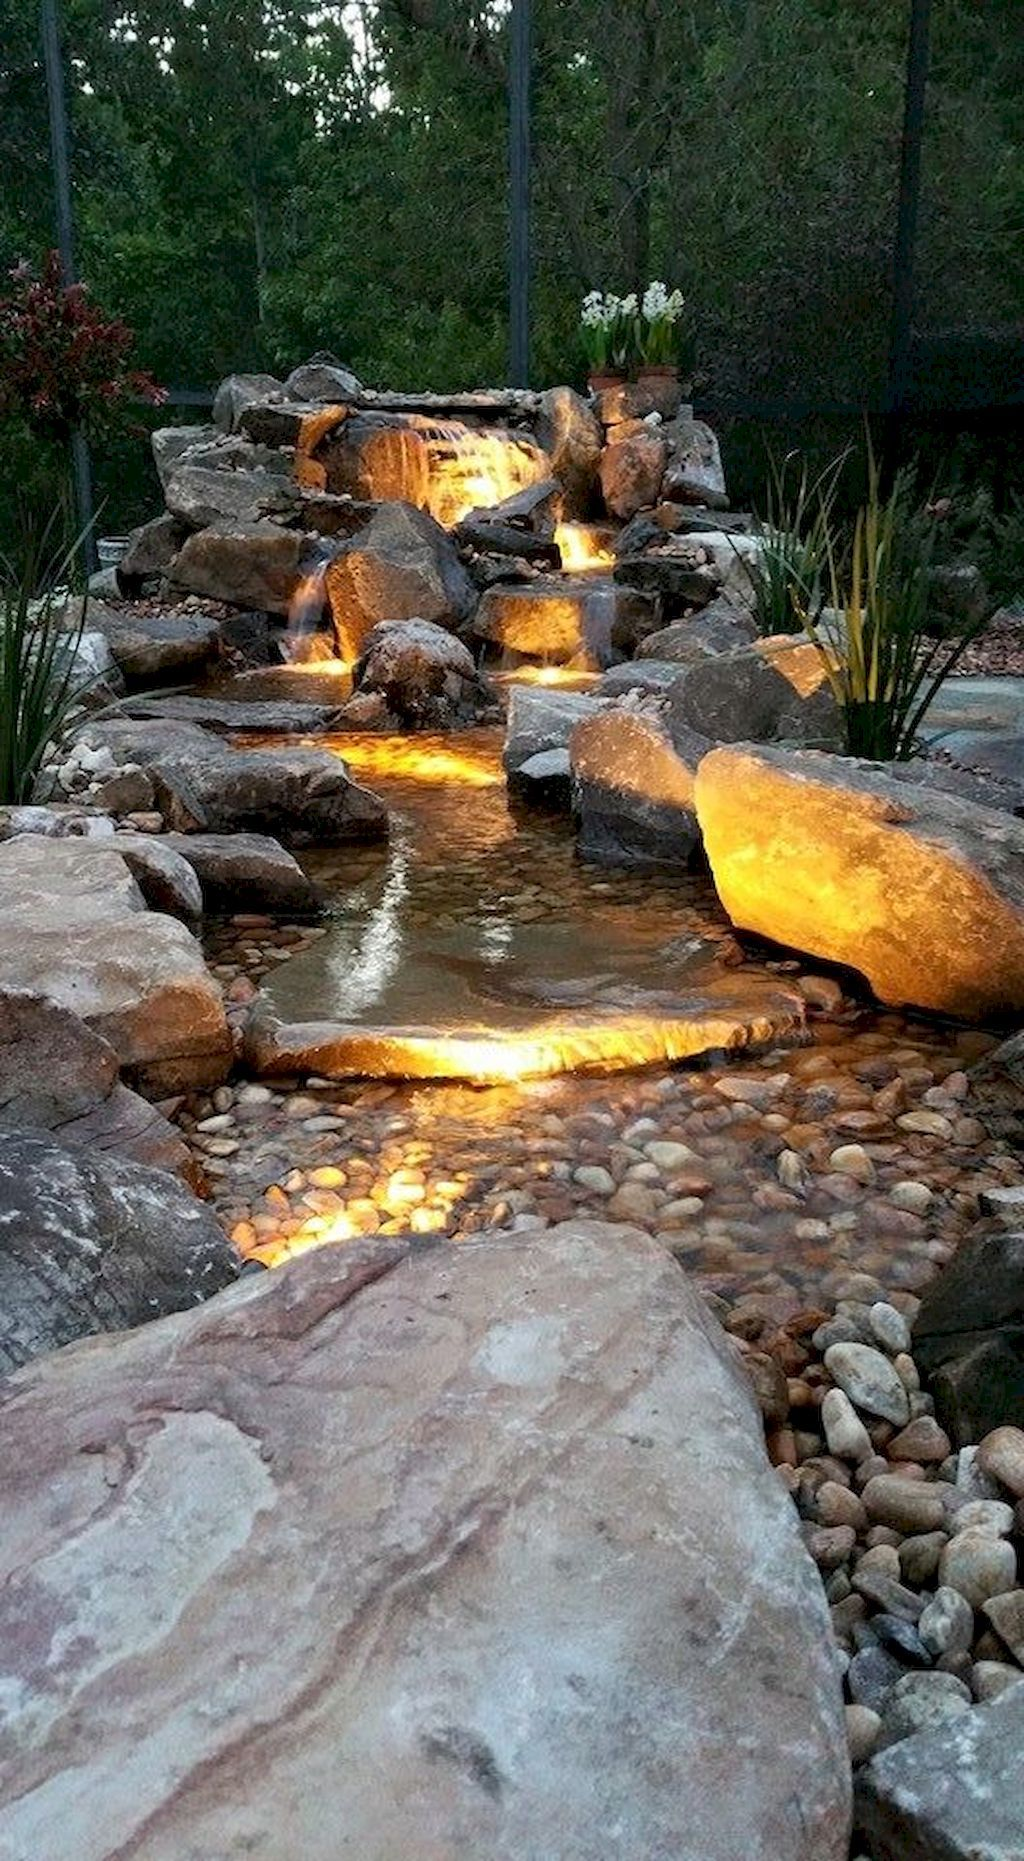 99 Graceful Backyard Waterfall Ideas on A Budget | Backyard ... on landscaping on a tight budget, small backyard designs, small backyard garden, backyard decorating ideas on a budget, slope landscaping on a budget, small backyard patio landscaping ideas,